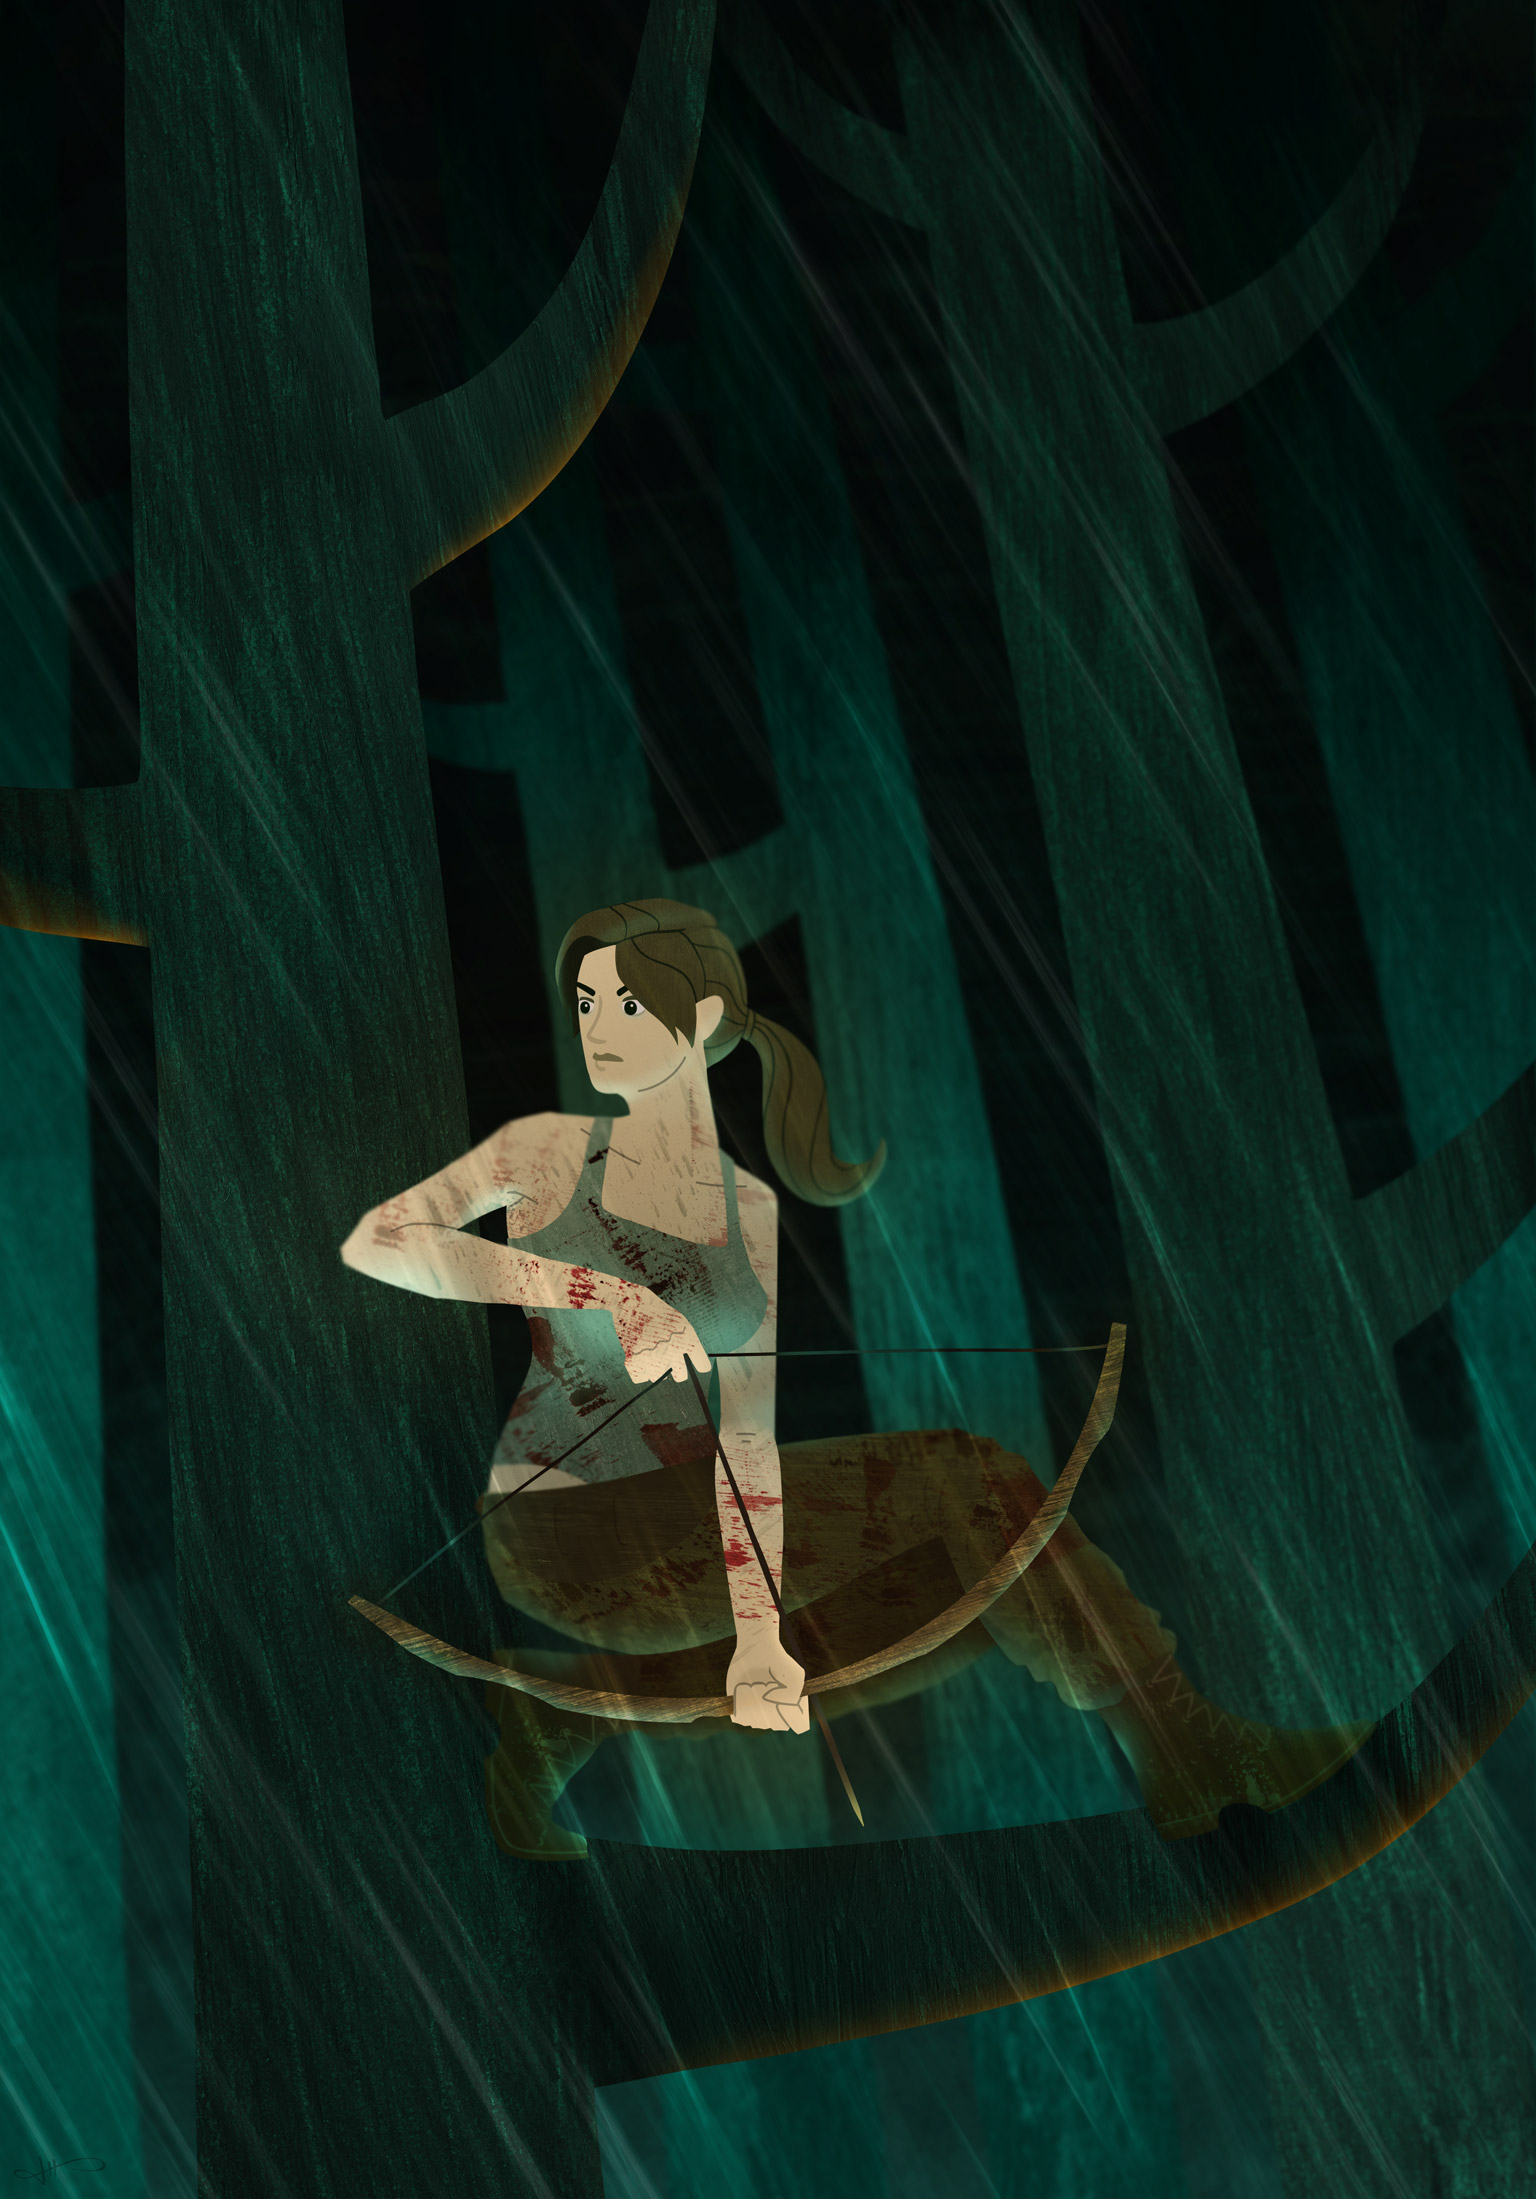 Illustration of Lara Croft crouching on a tree branch in the rain holding a bow and arrow.